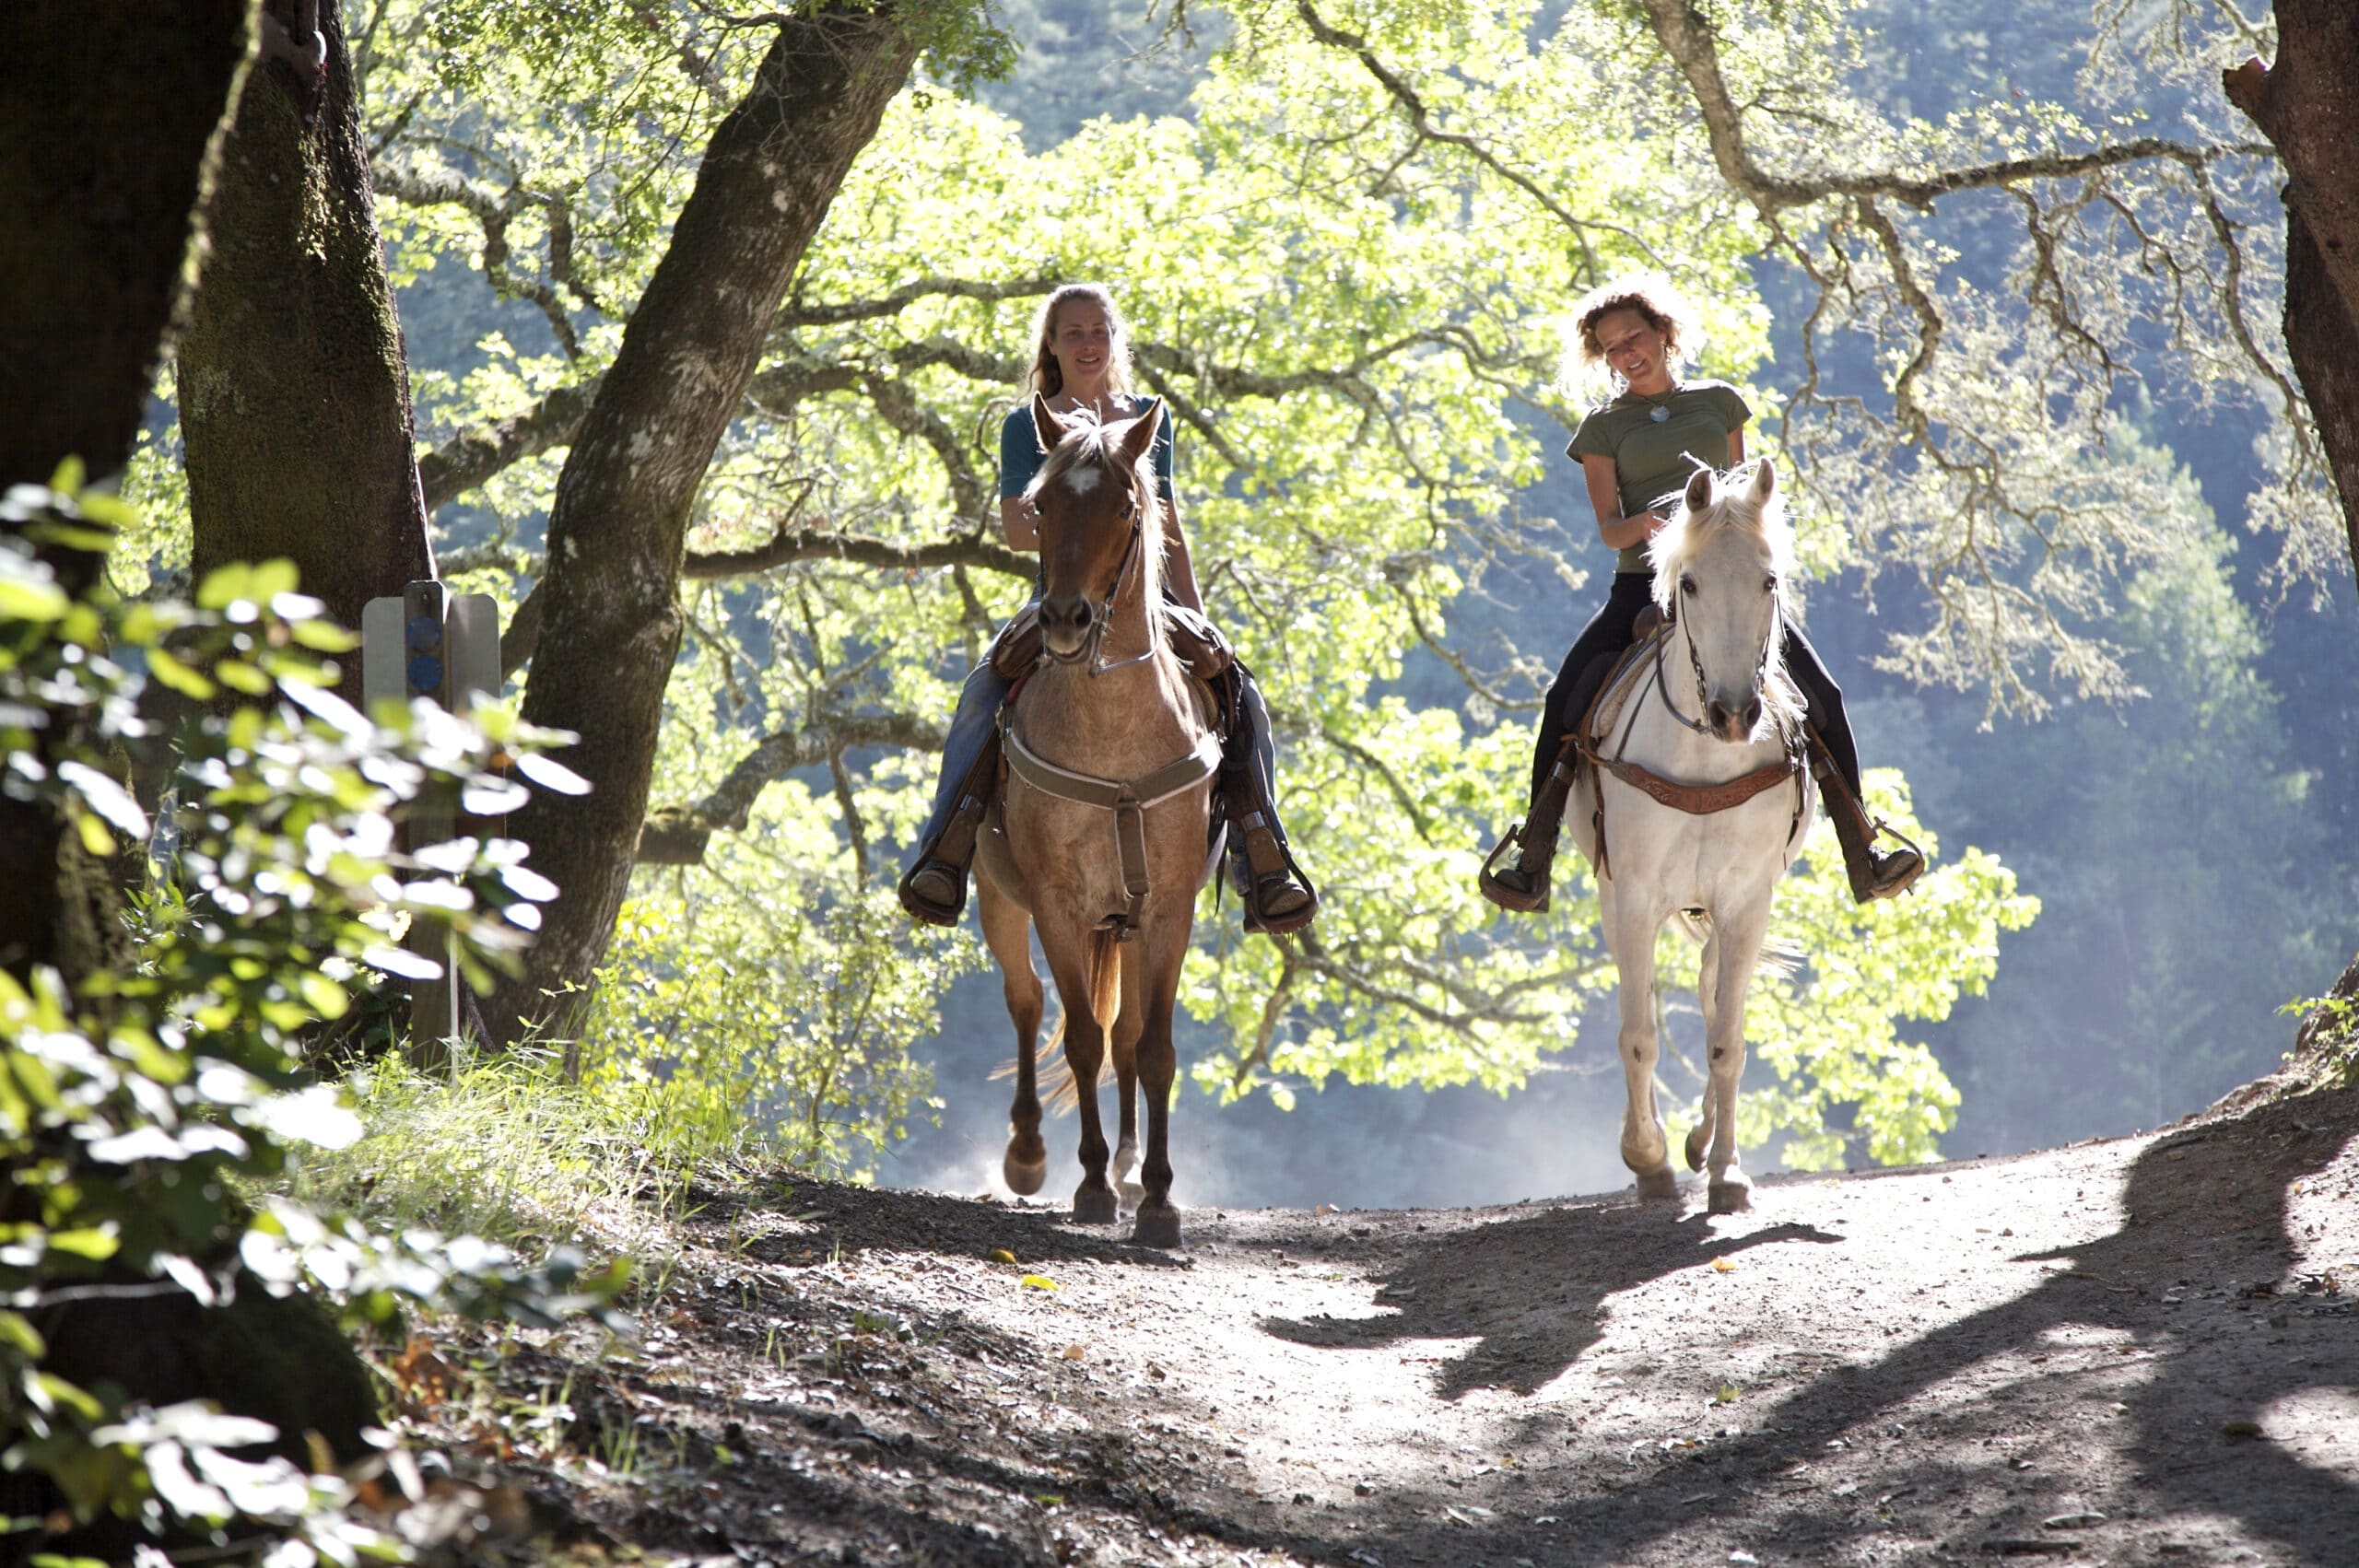 two white women riding horses on dirt path through sunny wooded area